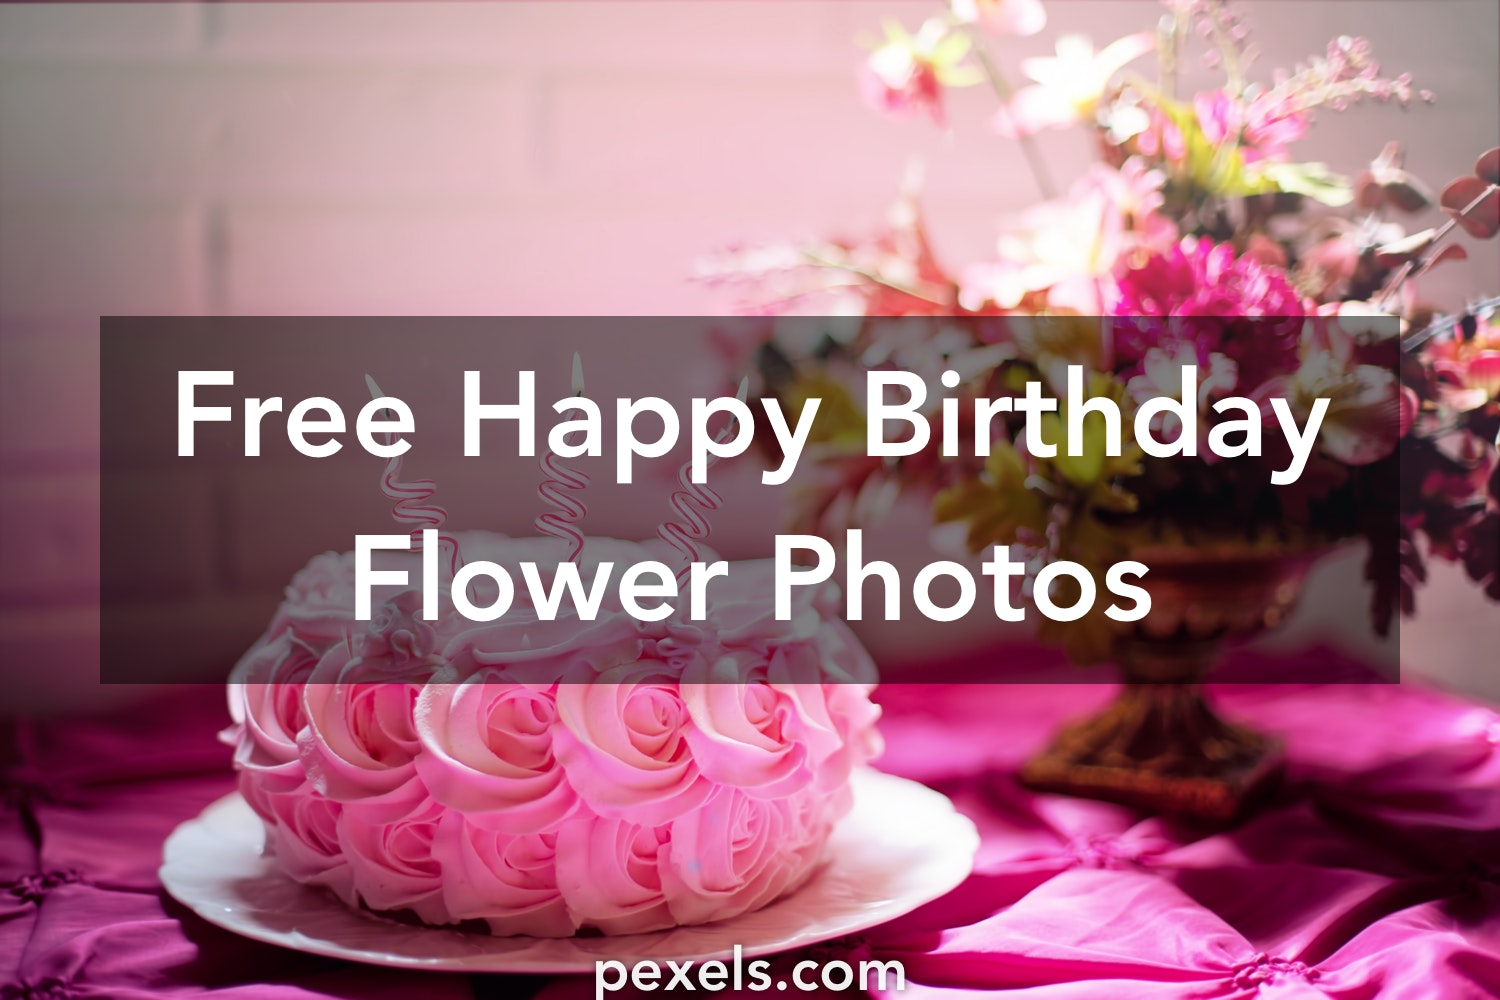 1000 interesting happy birthday flower photos pexels free stock 1000 interesting happy birthday flower photos pexels free stock photos izmirmasajfo